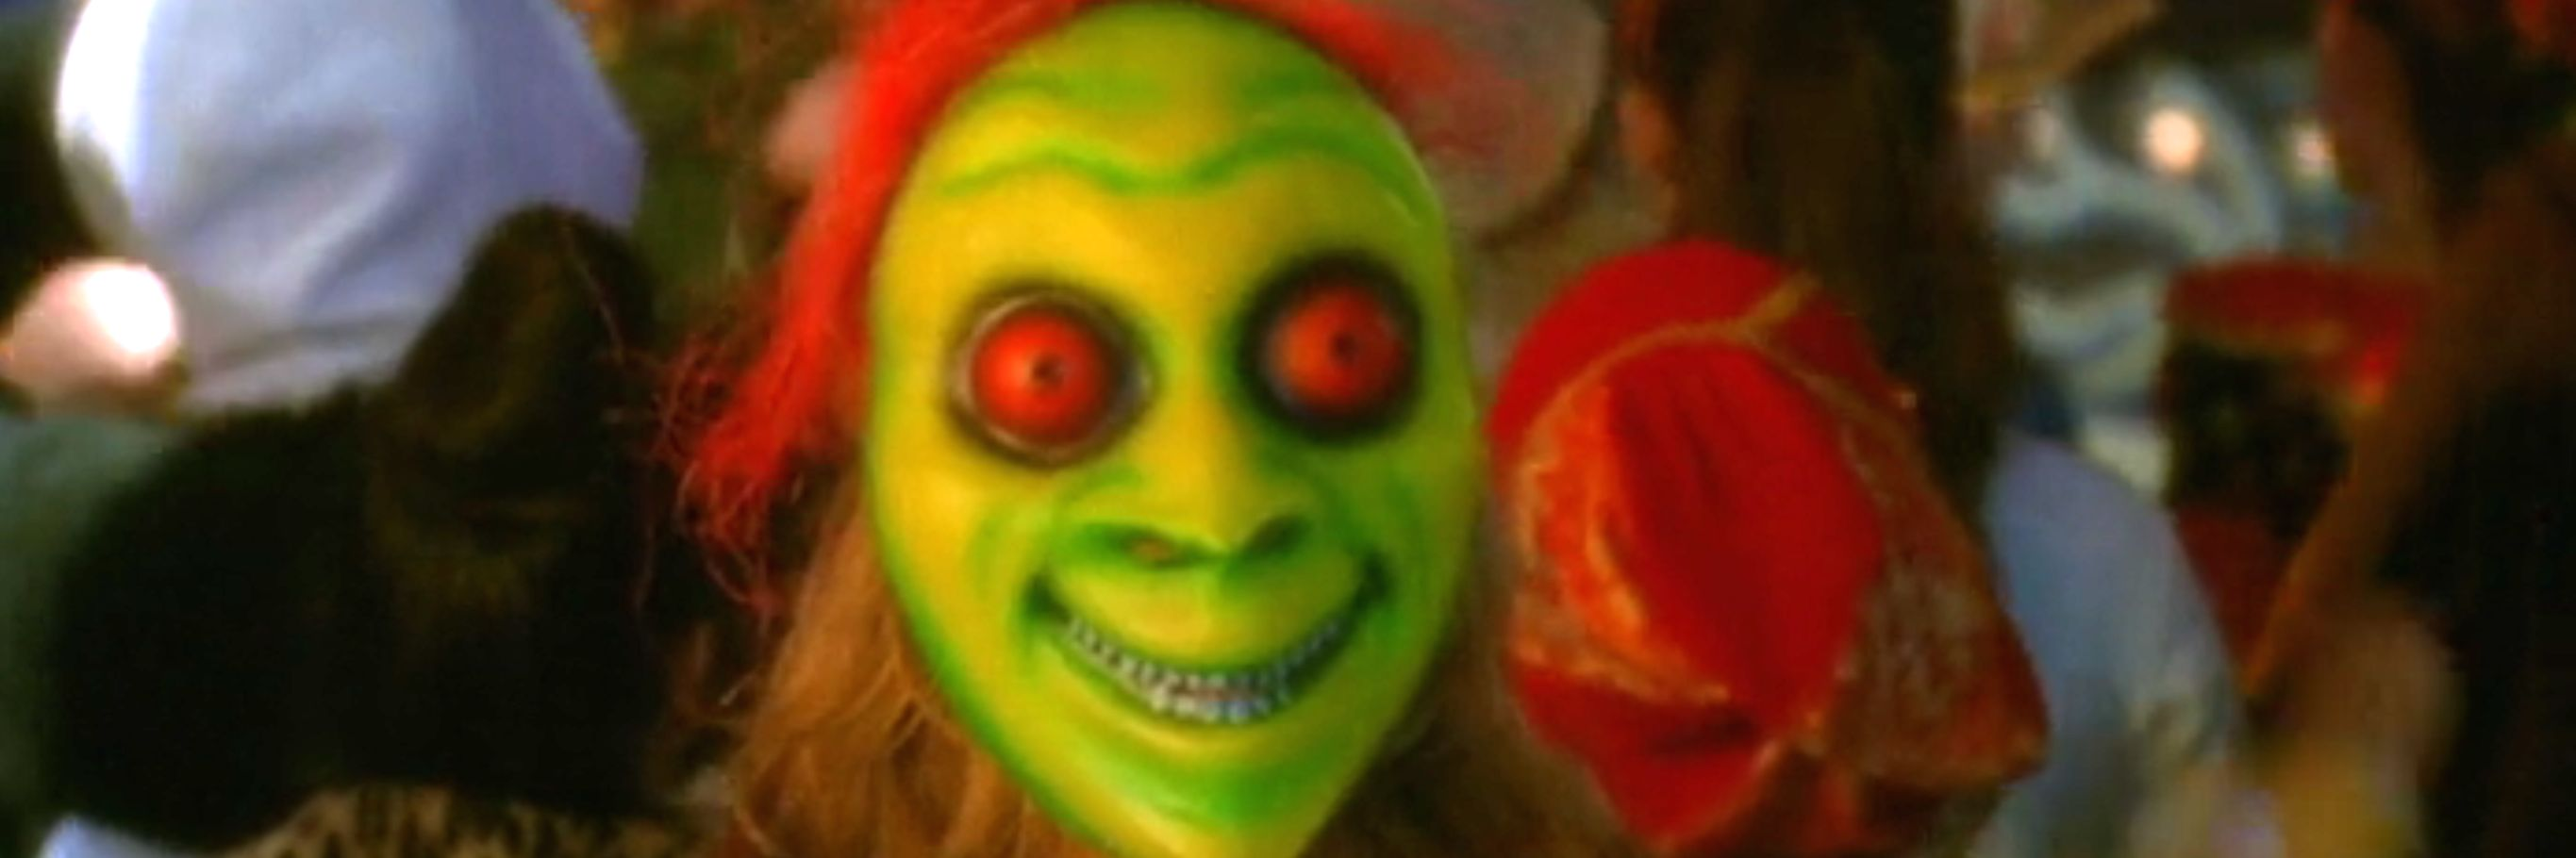 12 halloween dcom moments that traumatized you for life - mtv